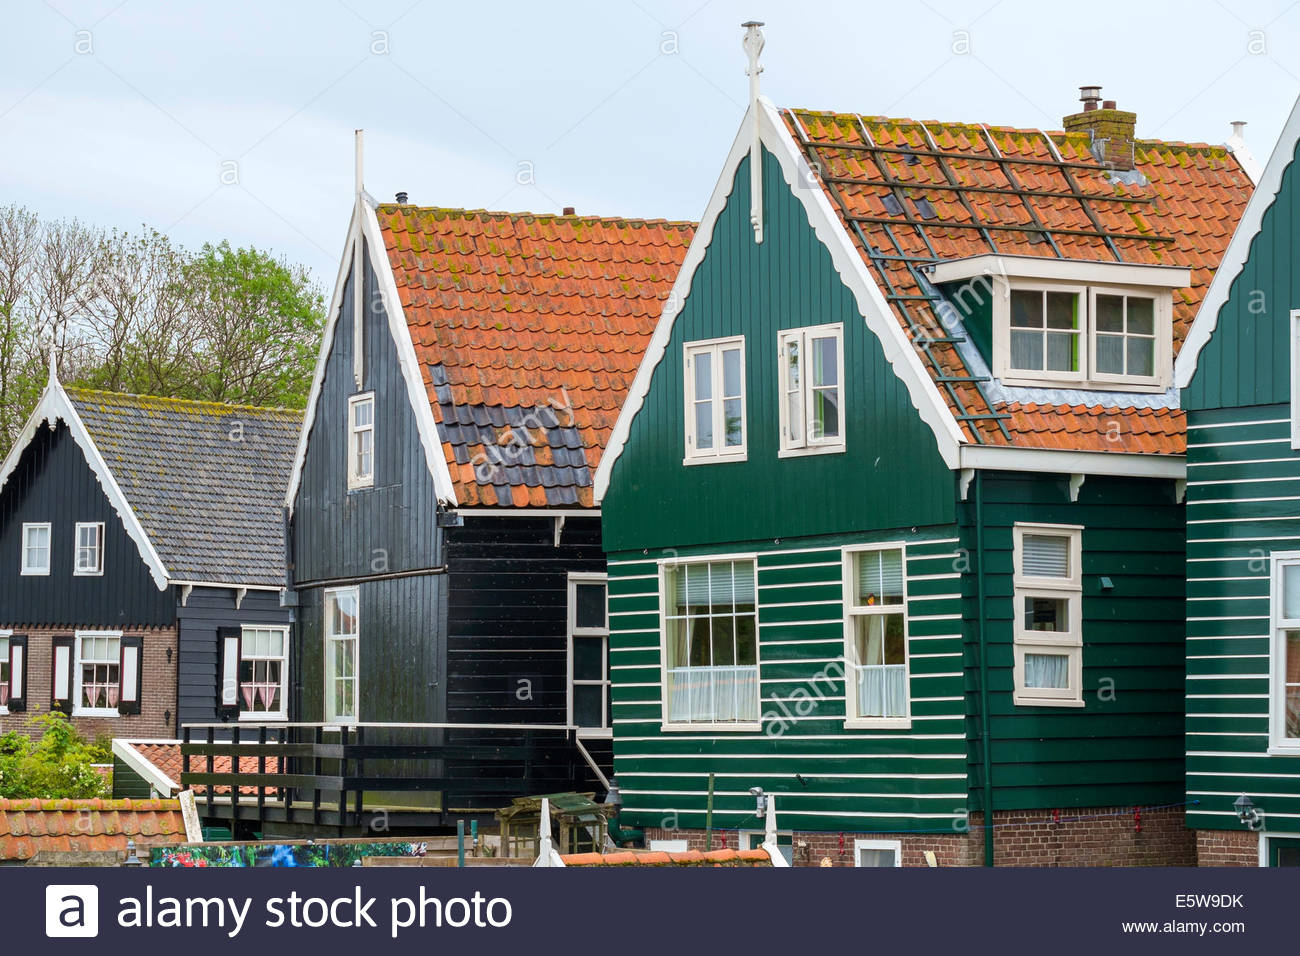 Traditional wooden houses in Marken, North Holland, Netherlands - Stock Image